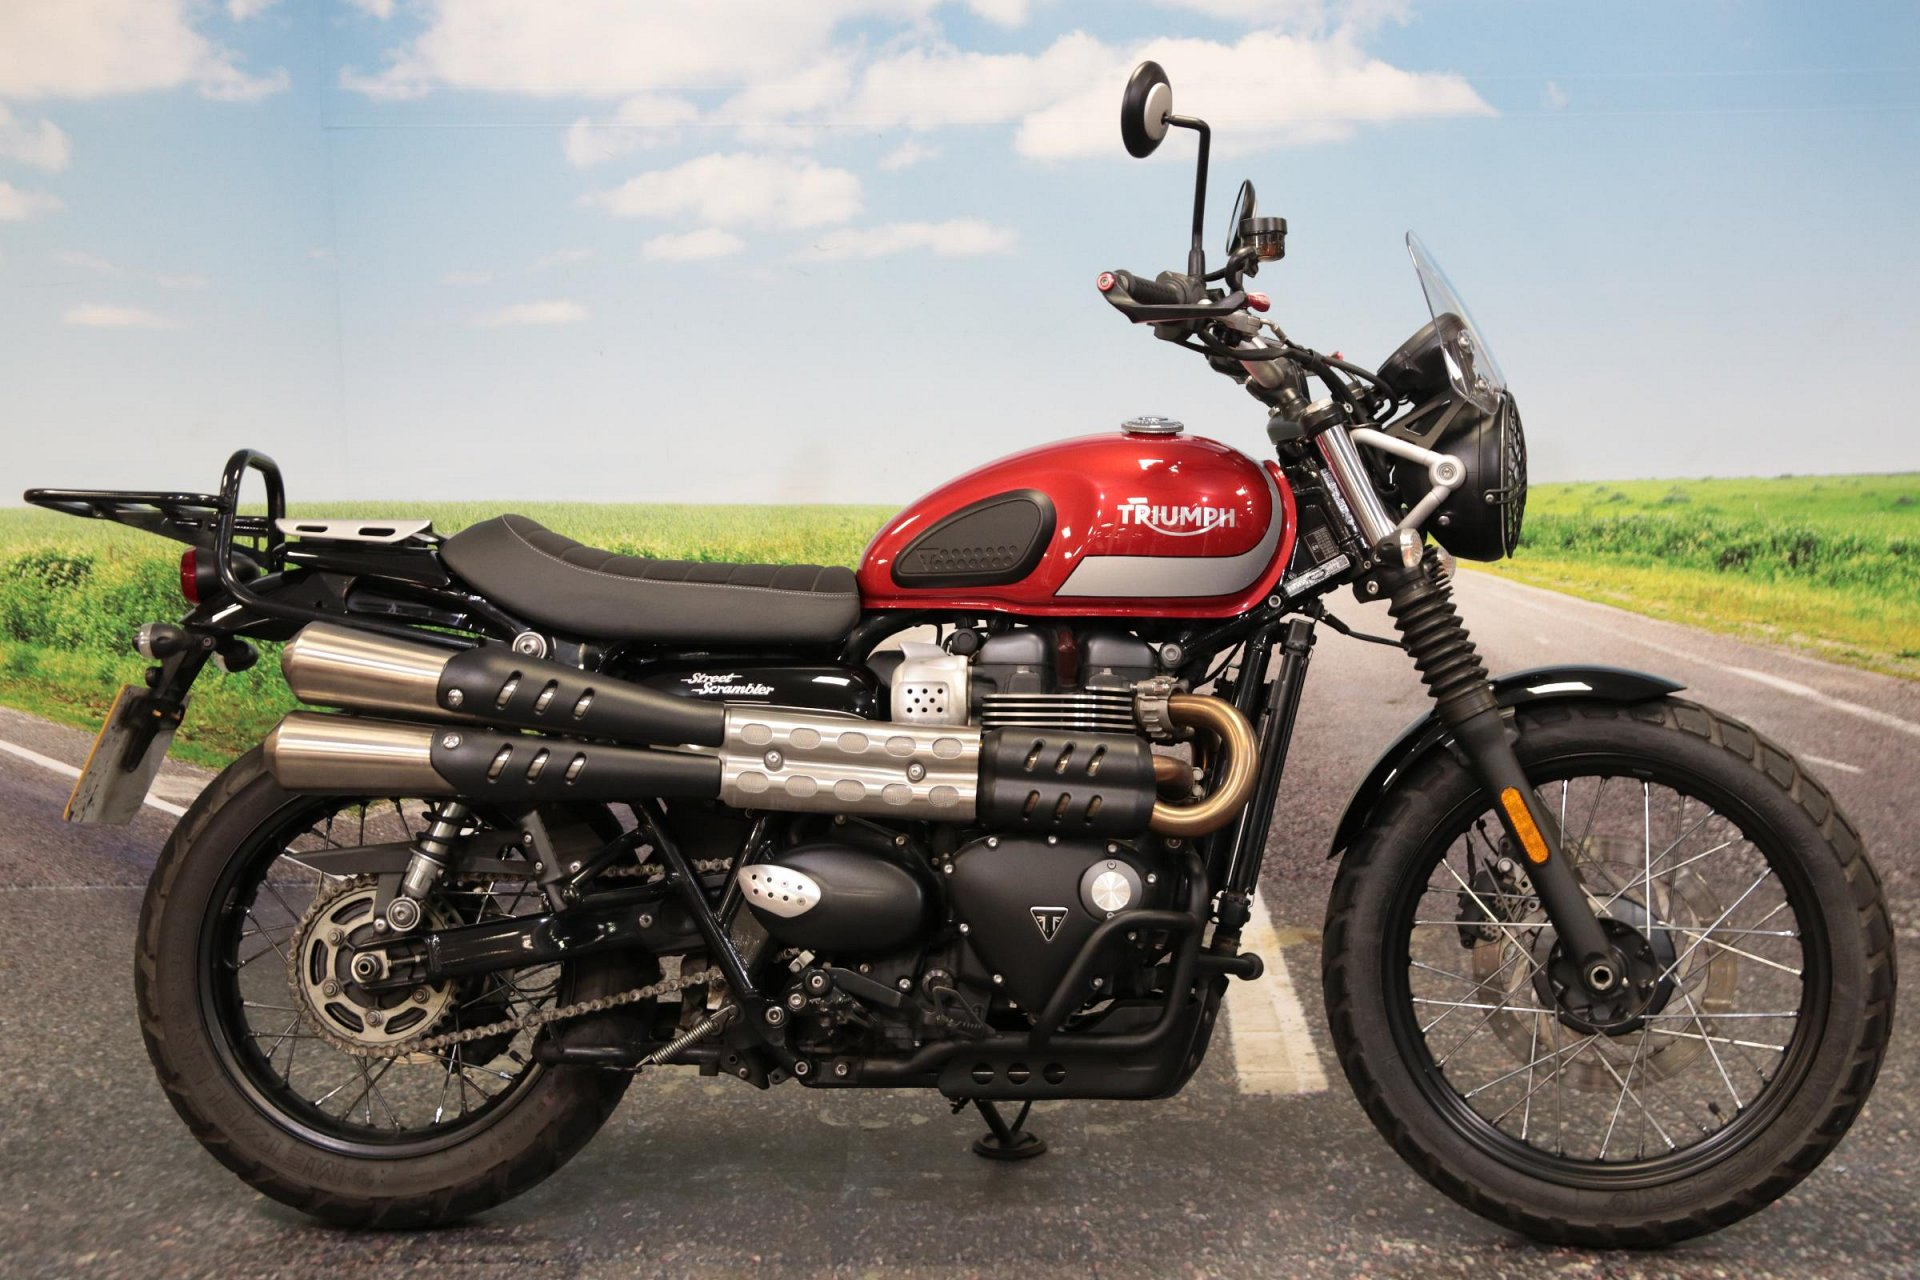 2018 Triumph Street Scrambler for sale in South Wales